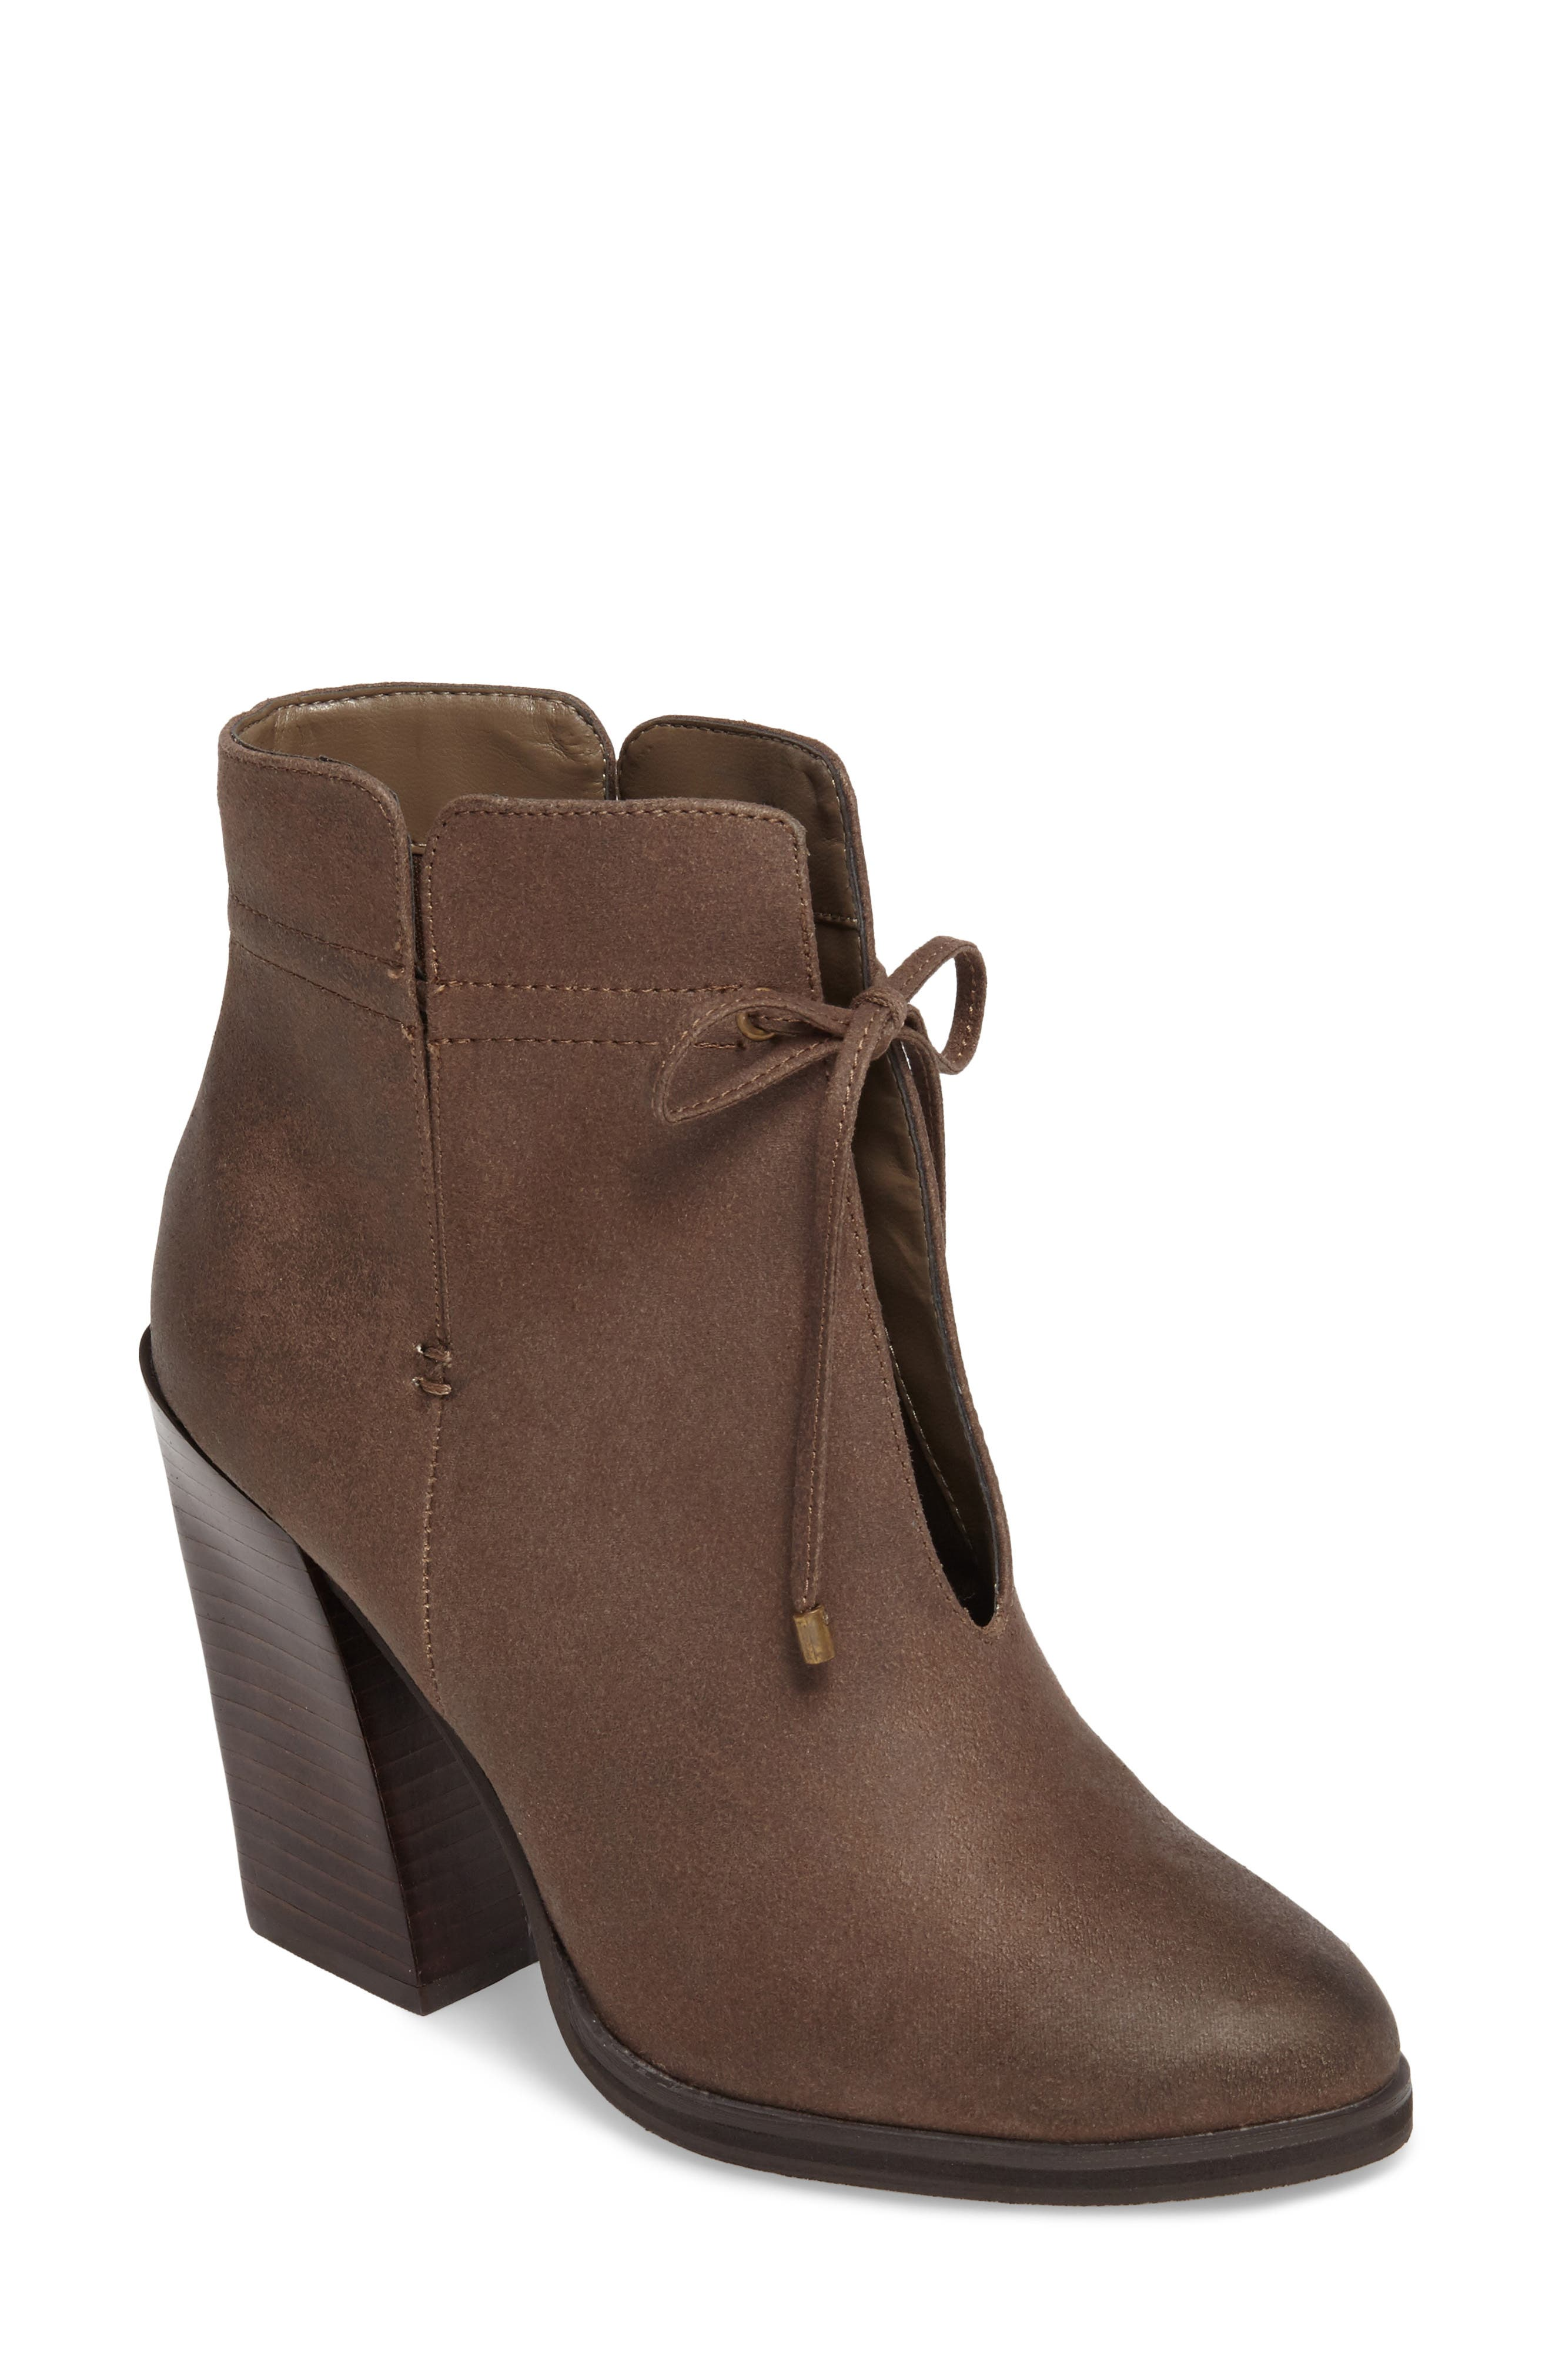 Chick Flick Bootie,                             Main thumbnail 1, color,                             Taupe Faux Leather